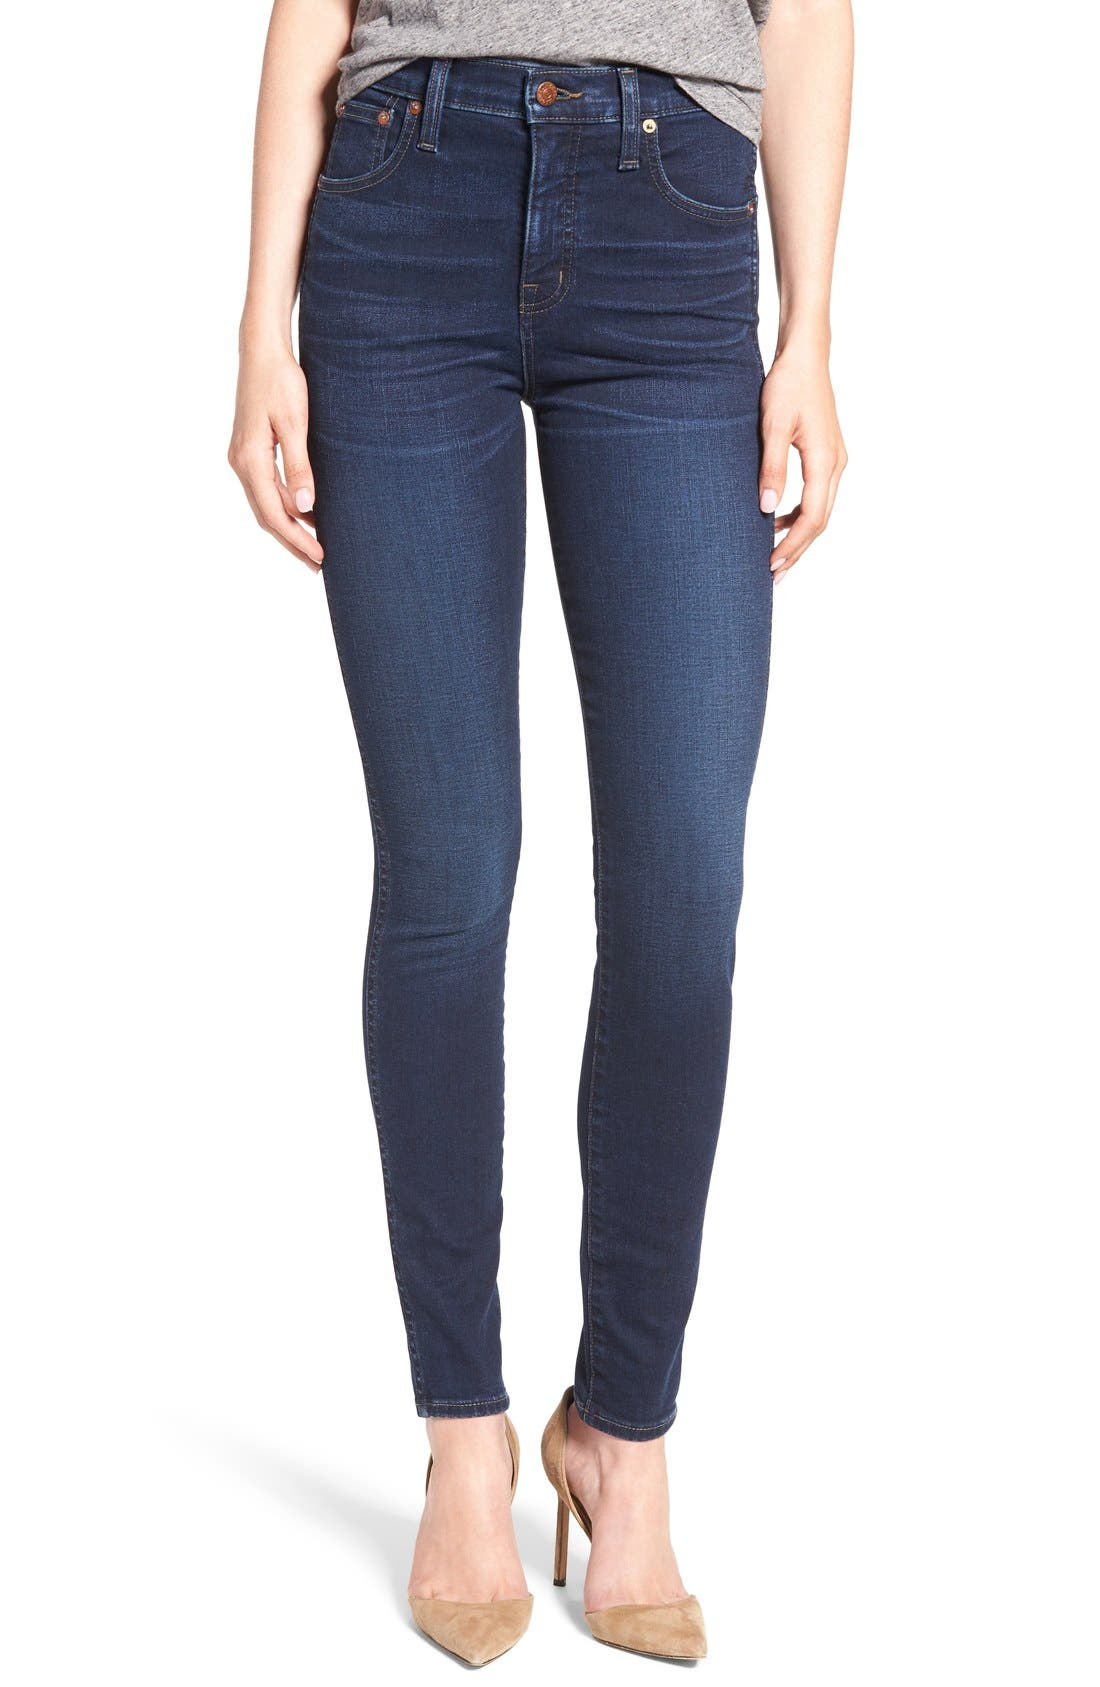 MADEWELL,                             10-Inch High Rise Skinny Jeans,                             Alternate thumbnail 10, color,                             HAYES WASH